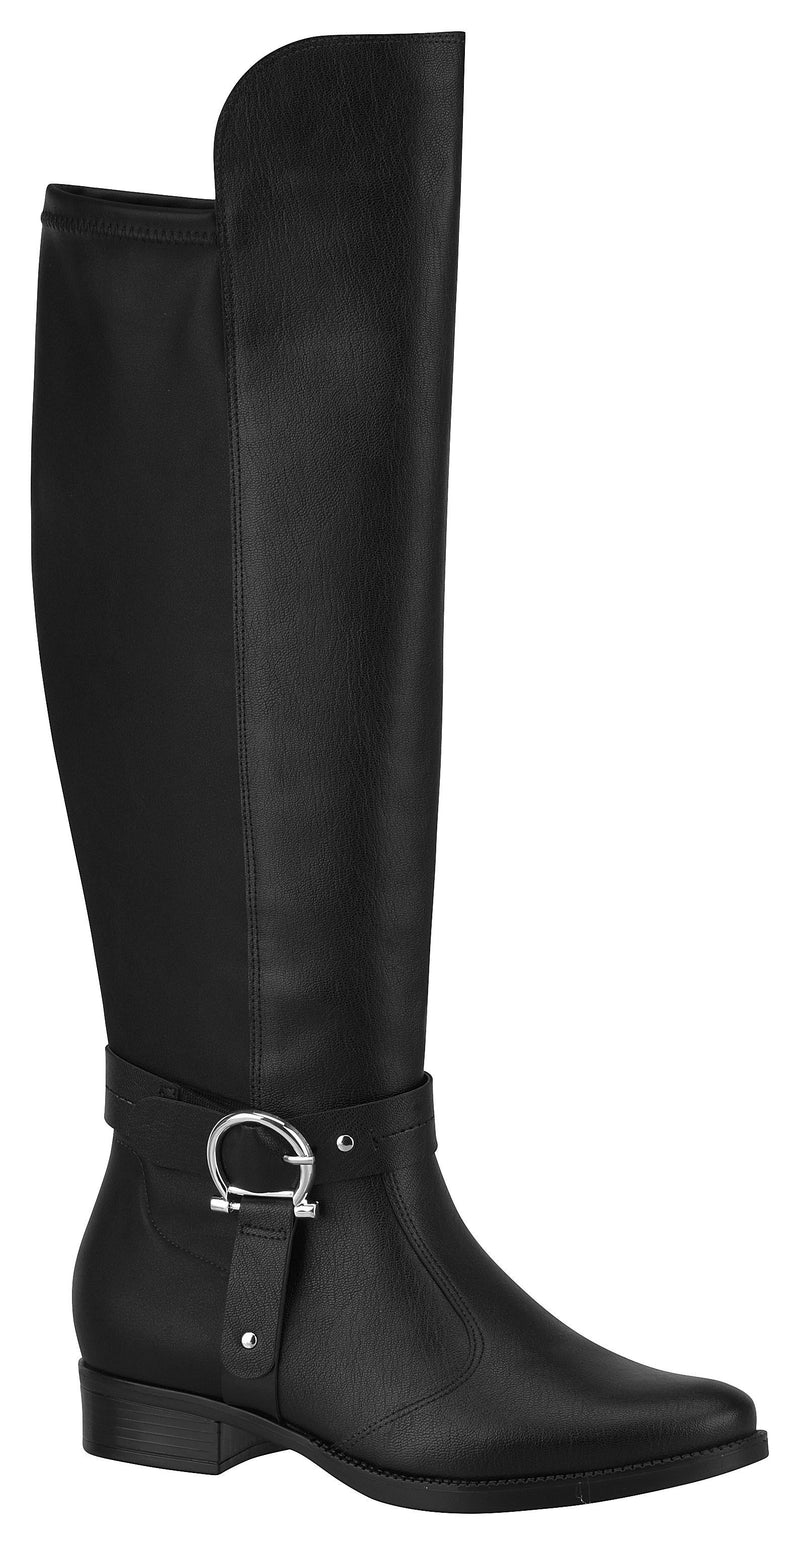 Vizzano 3050.120 Women Fashion Soft Long Boot in Black